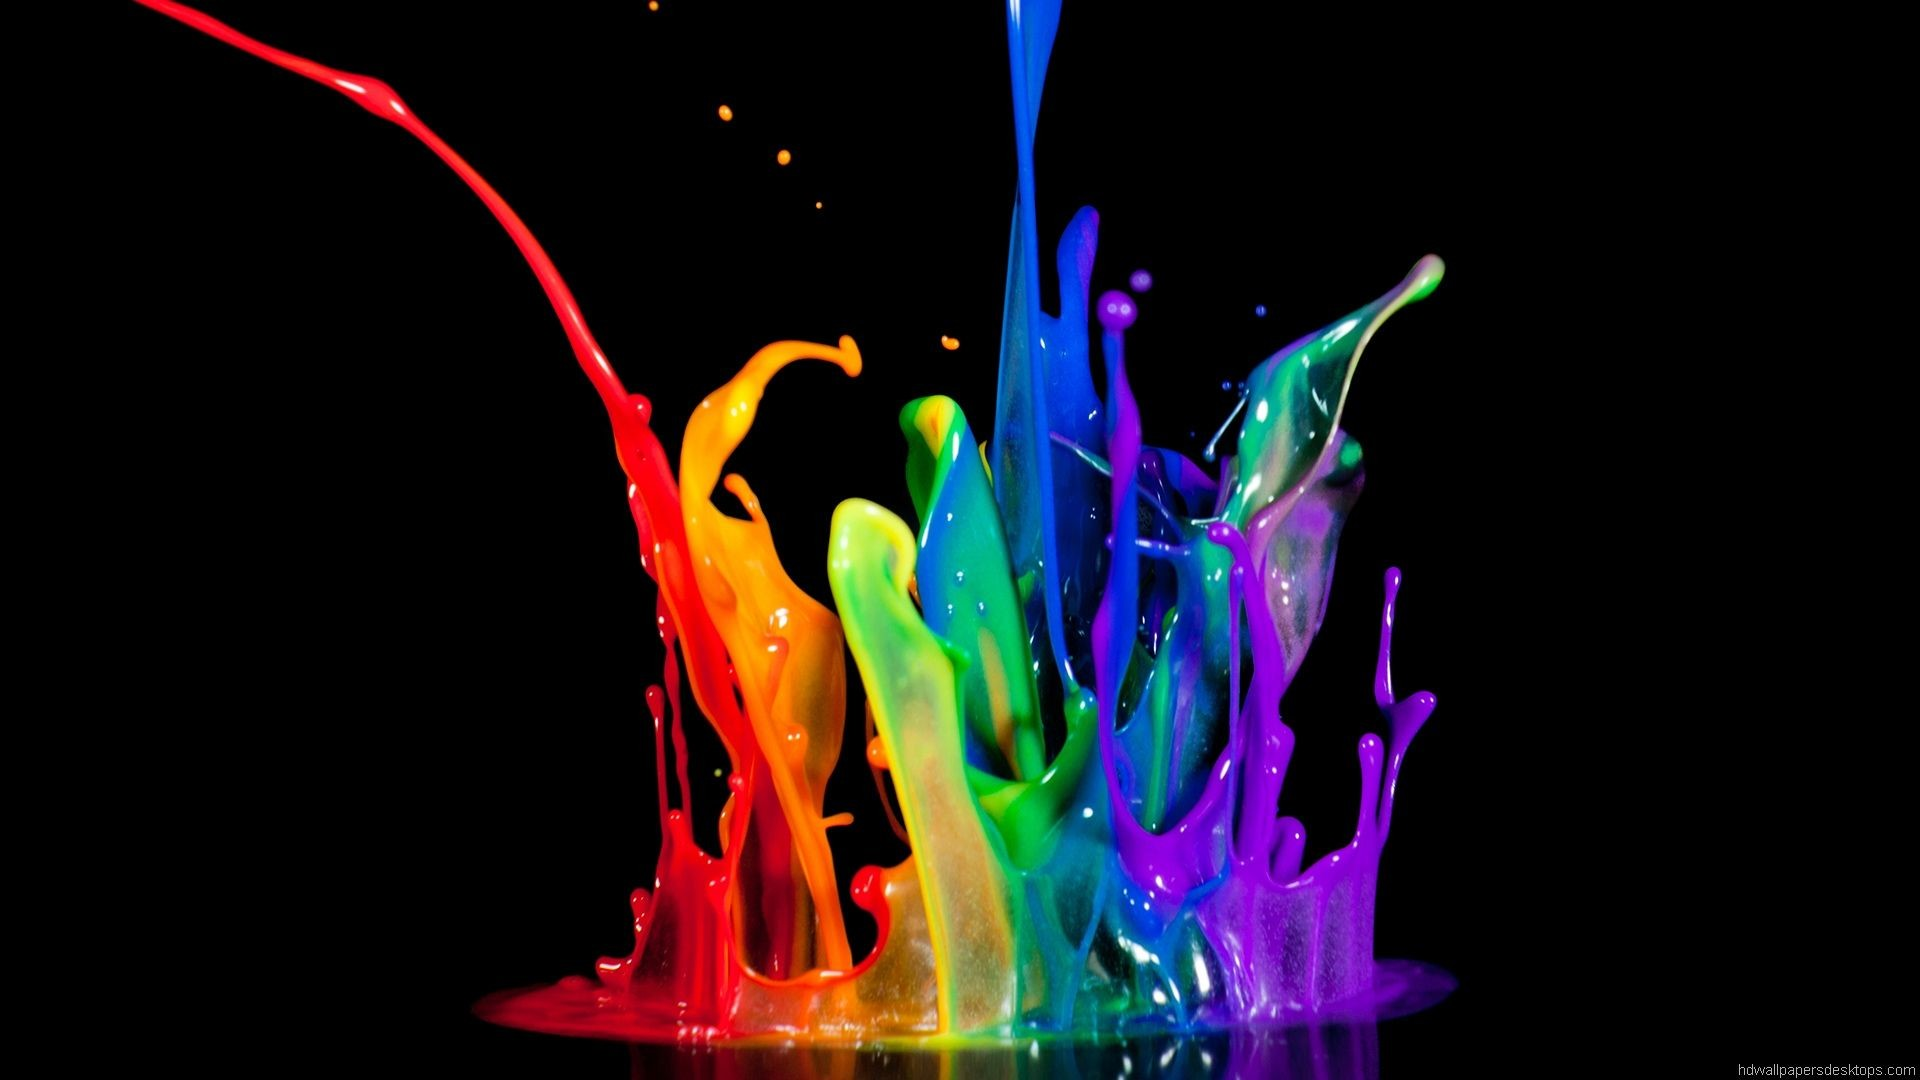 1920x1080 colors of the rainbow | Color HD Wallpapers, HQ Wallpapers, Desktop  Background,